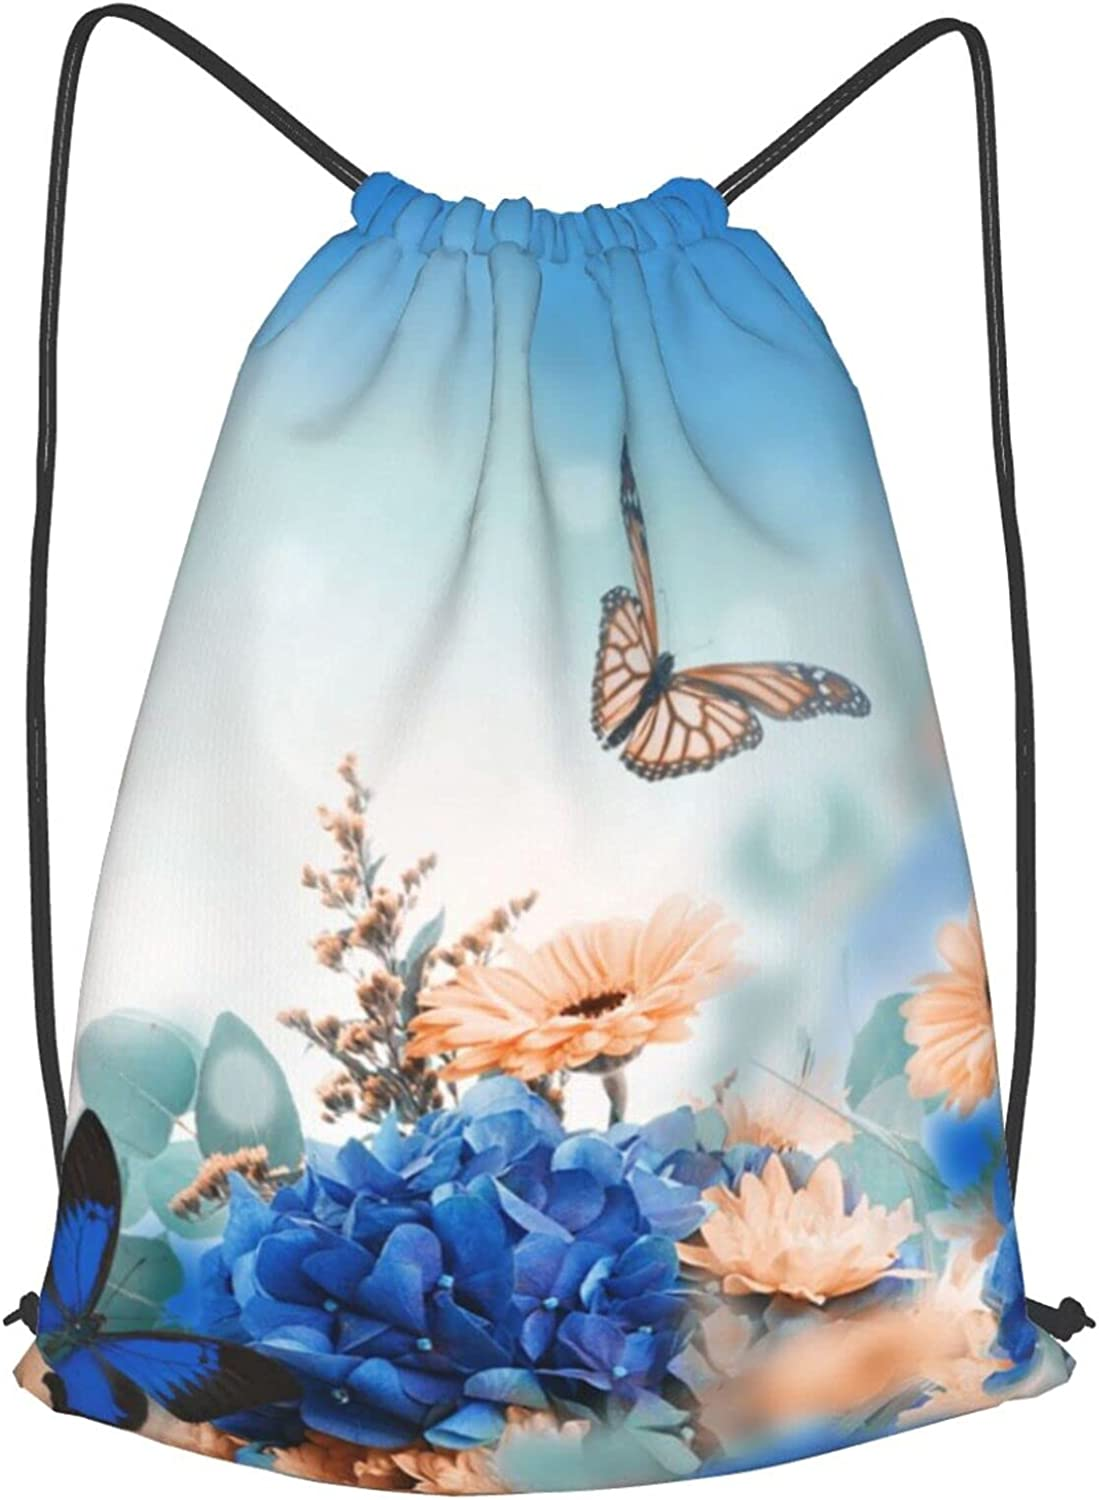 Drawstring Bag Hydrangea And Daisy Light Colorado Springs Mall Sp Butterfly Translated